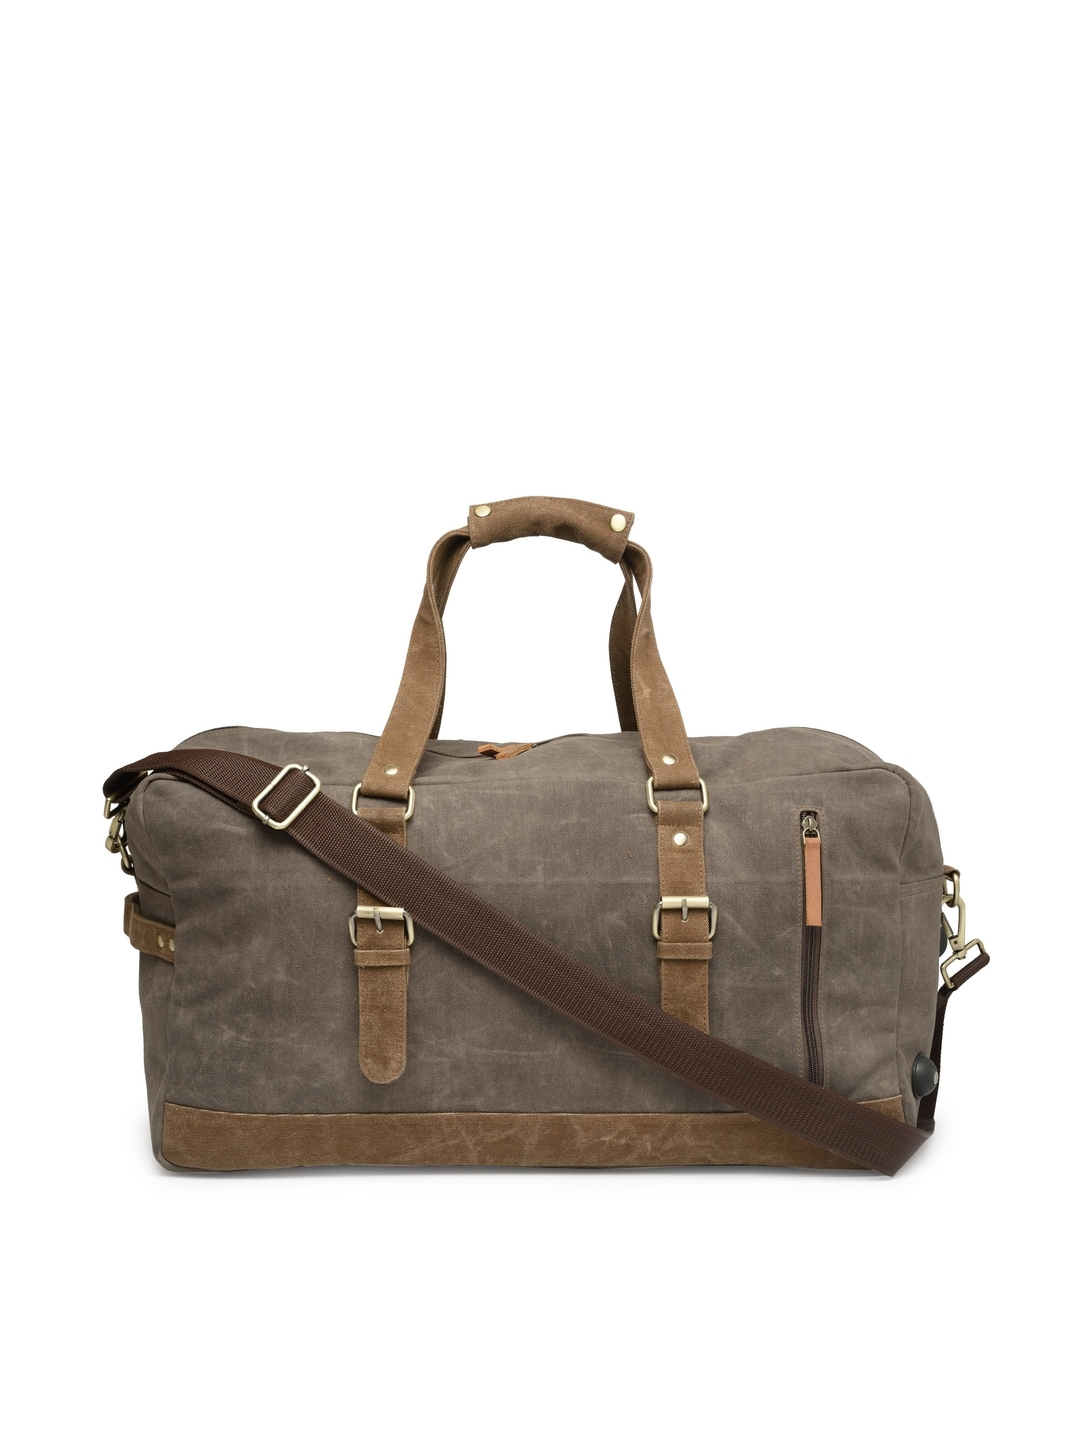 c3001c558b Men s Duffle Bags - Buy Duffle Bags for Men Online in India